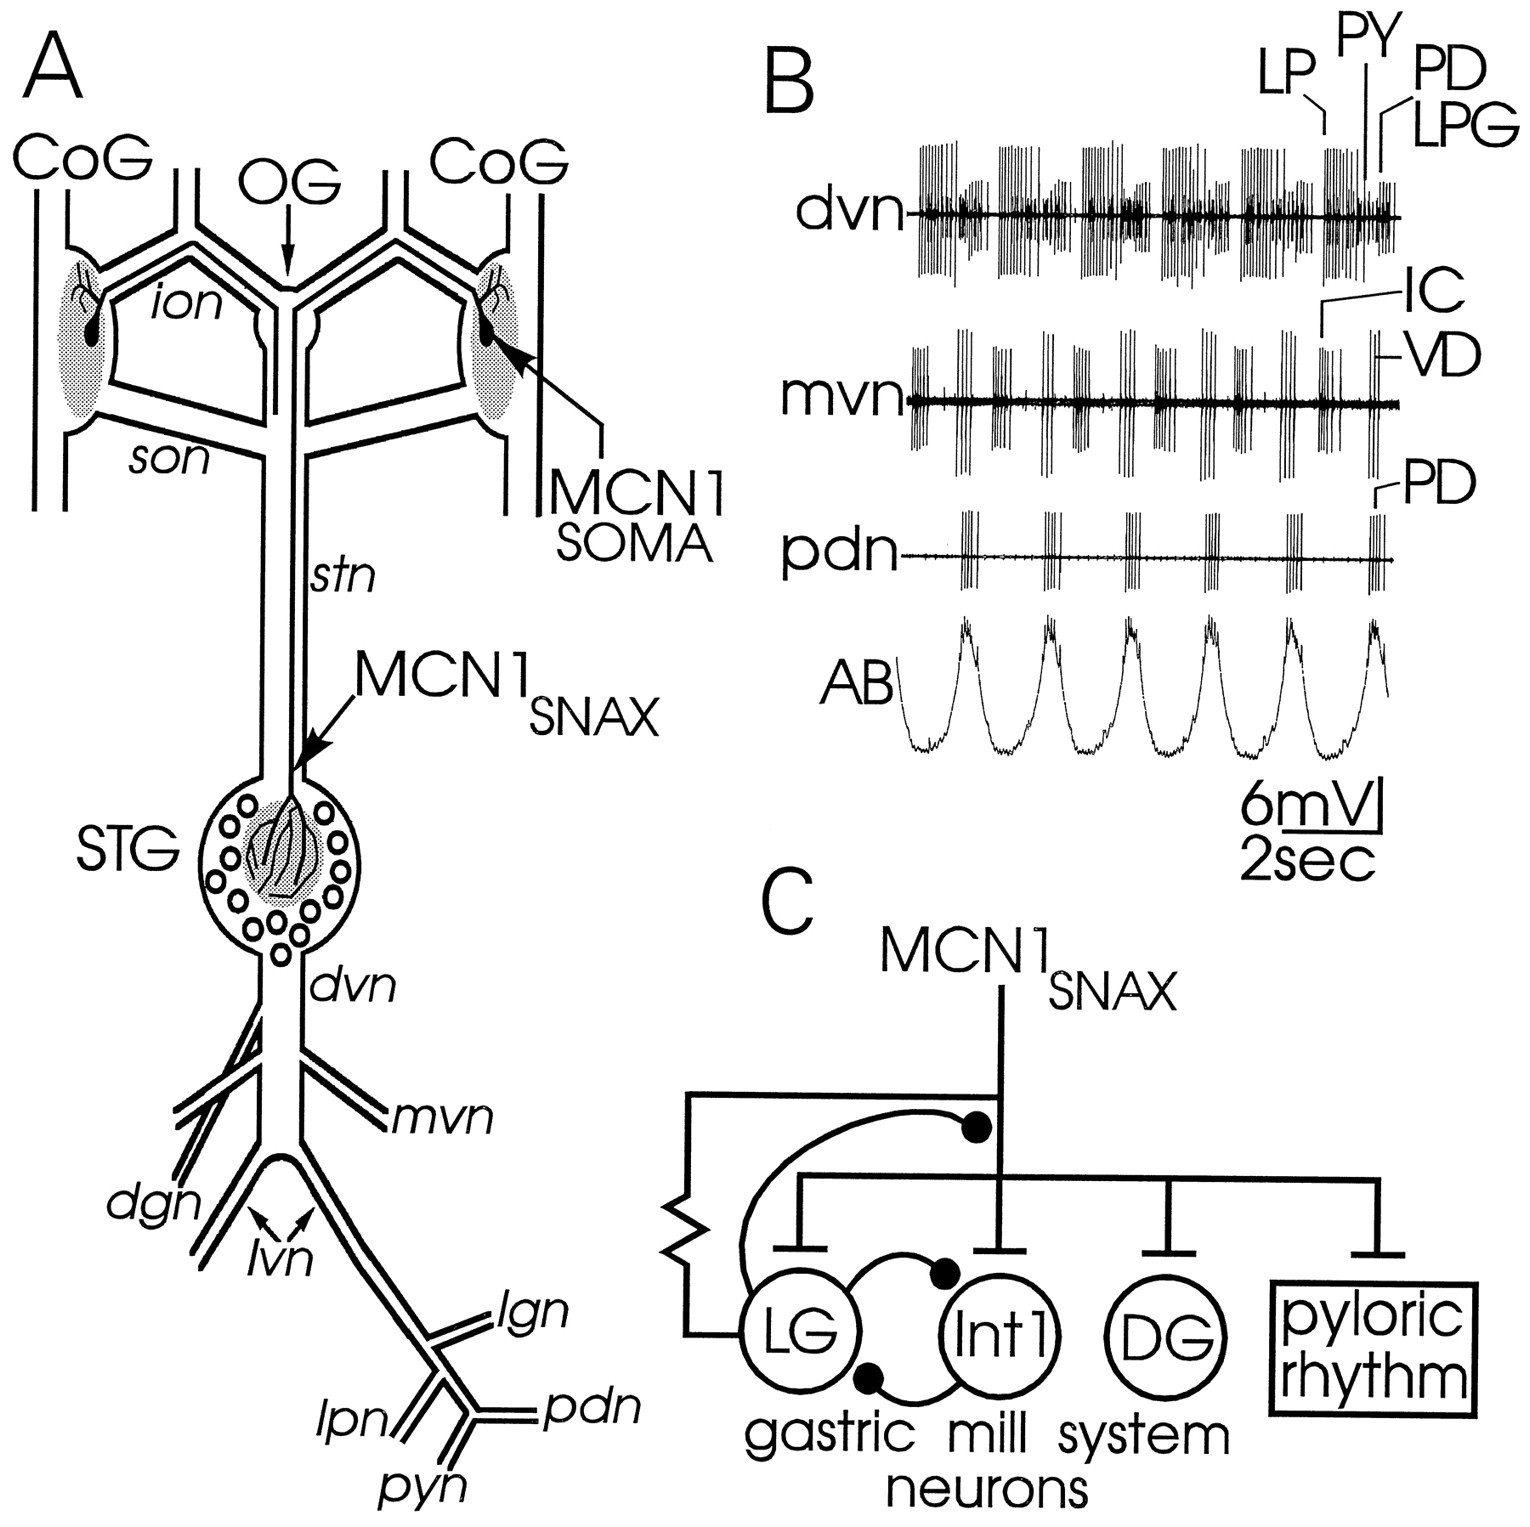 intercircuit control of motor pattern modulation by presynaptic Bar Manager Tender Resume Day download figure